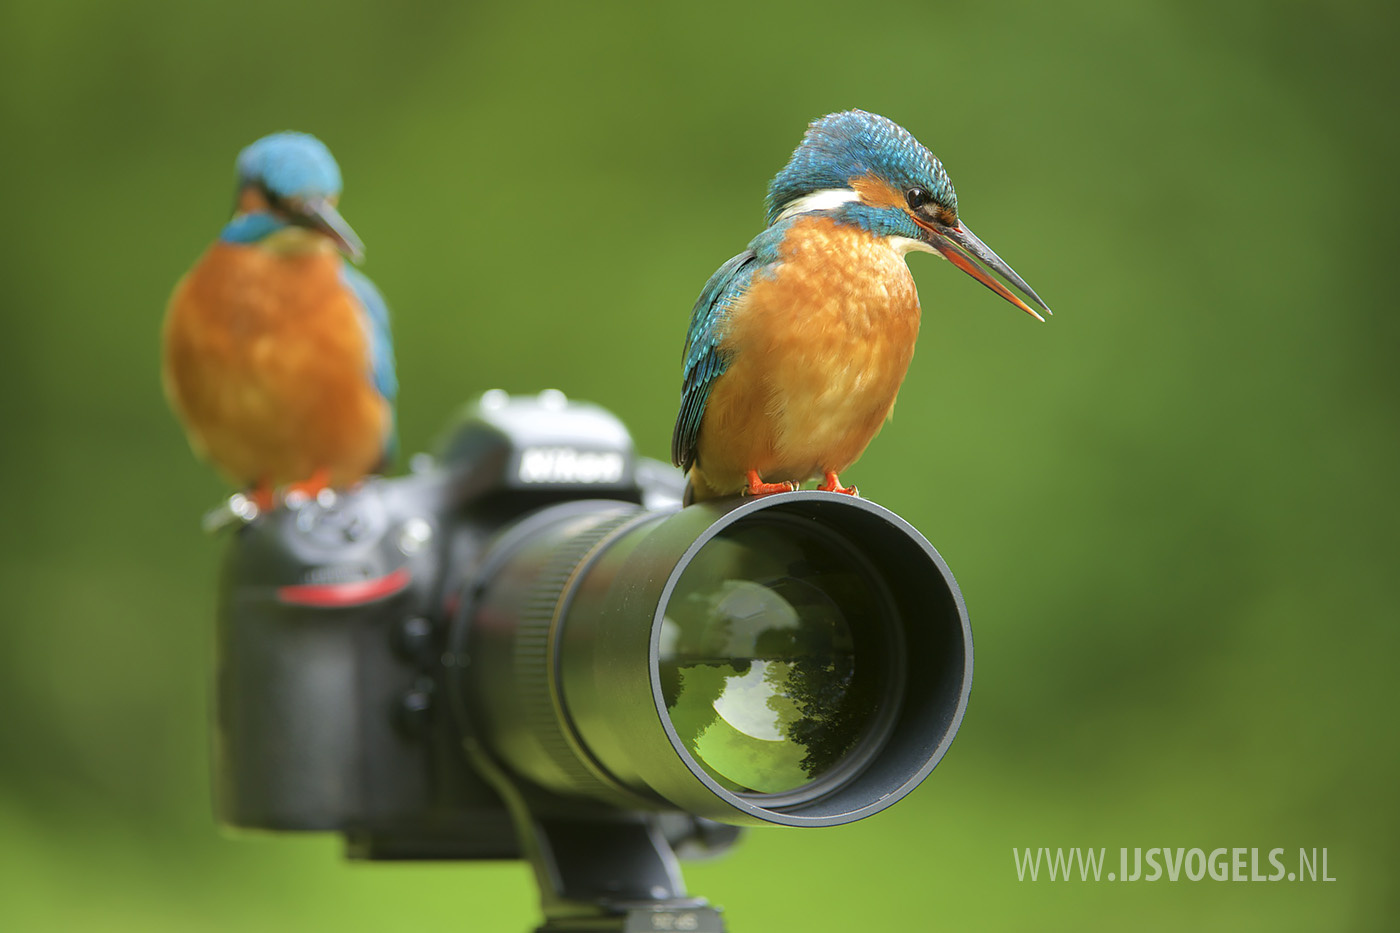 You focus, I press the shutter! by Corné van Oosterhout